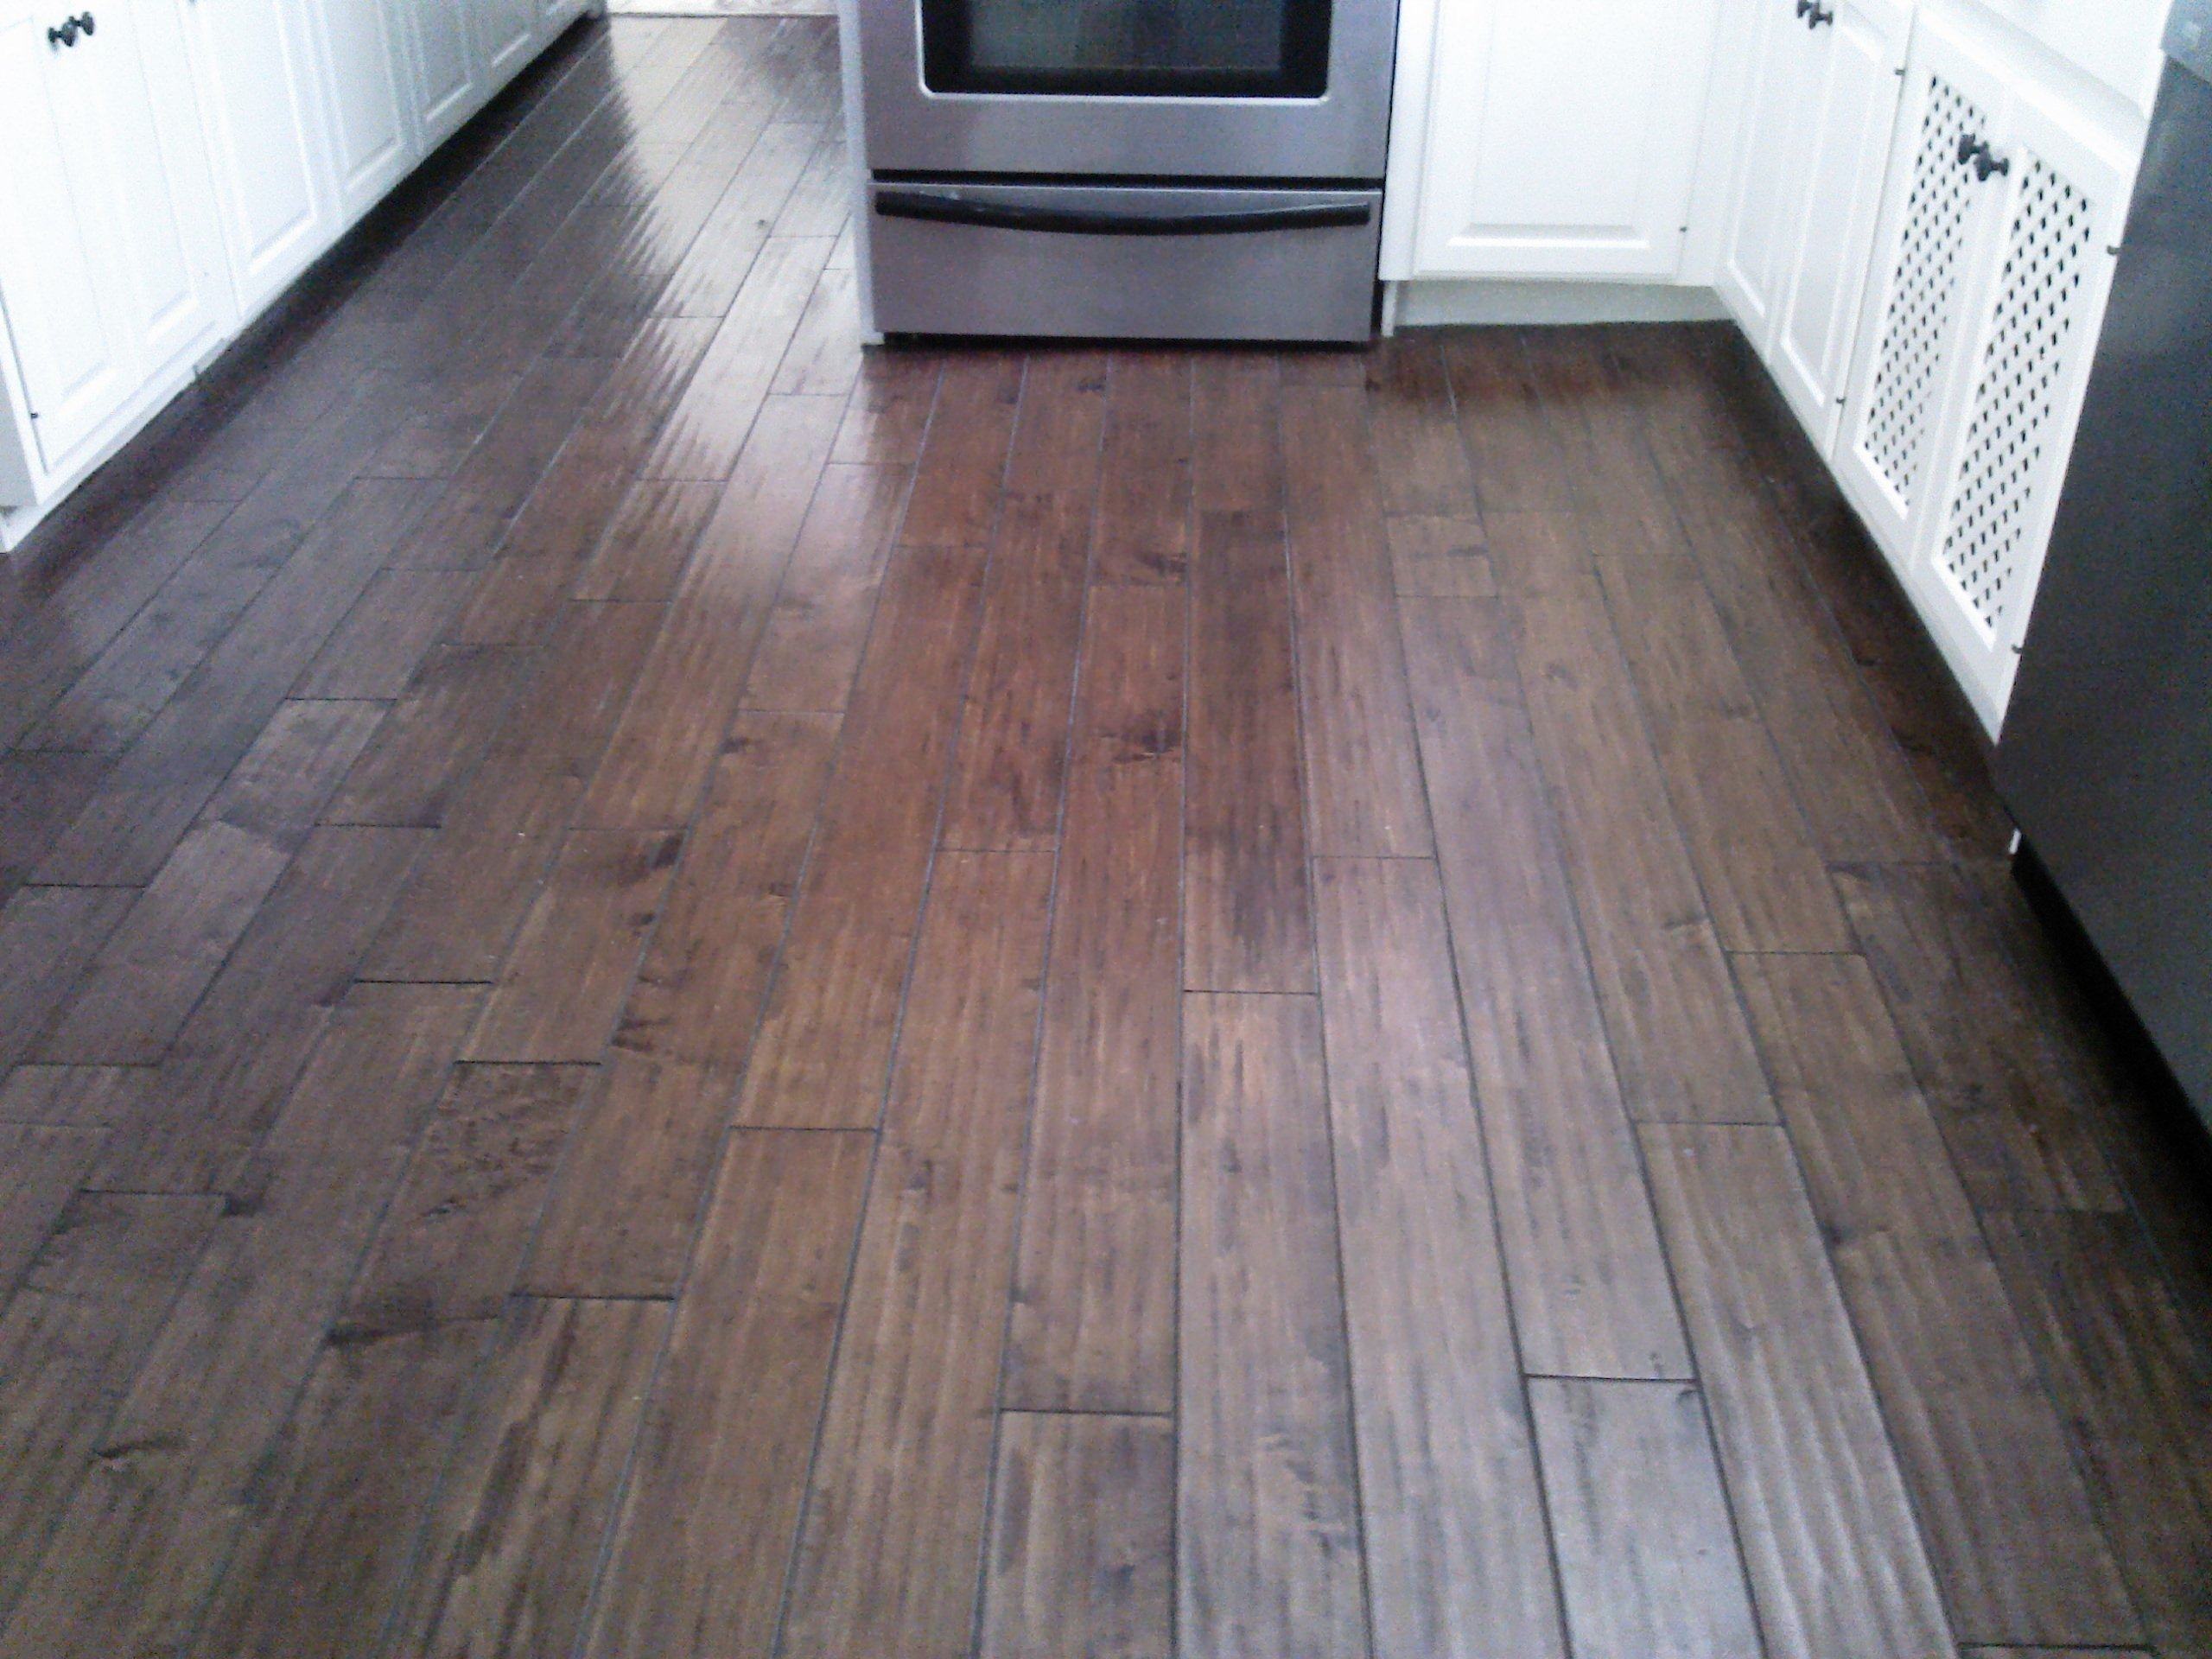 Laminate Wood Flooring In Kitchen (Ratings, Reviews)